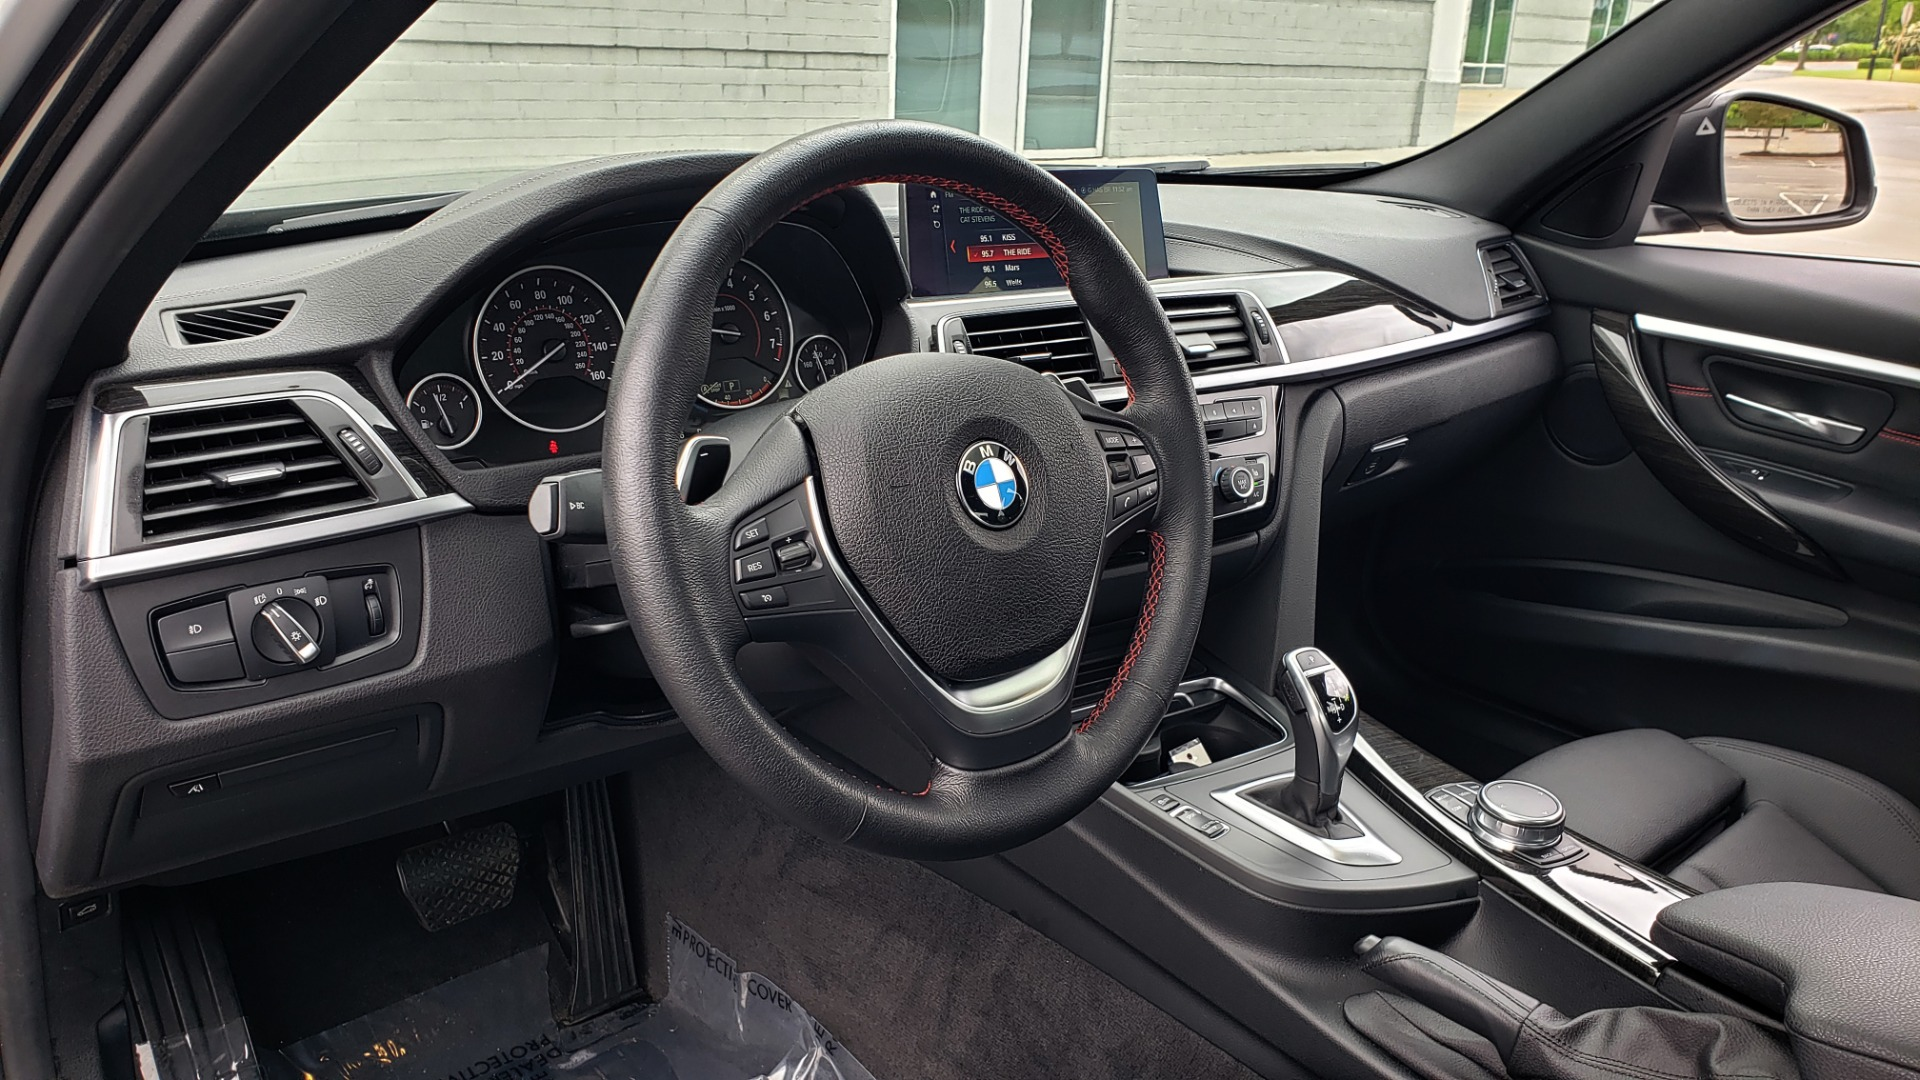 Used 2018 BMW 3 SERIES 330IXDRIVE / CONV PKG / NAV / SUNROOF / HTD STS / REARVIEW for sale $26,552 at Formula Imports in Charlotte NC 28227 36